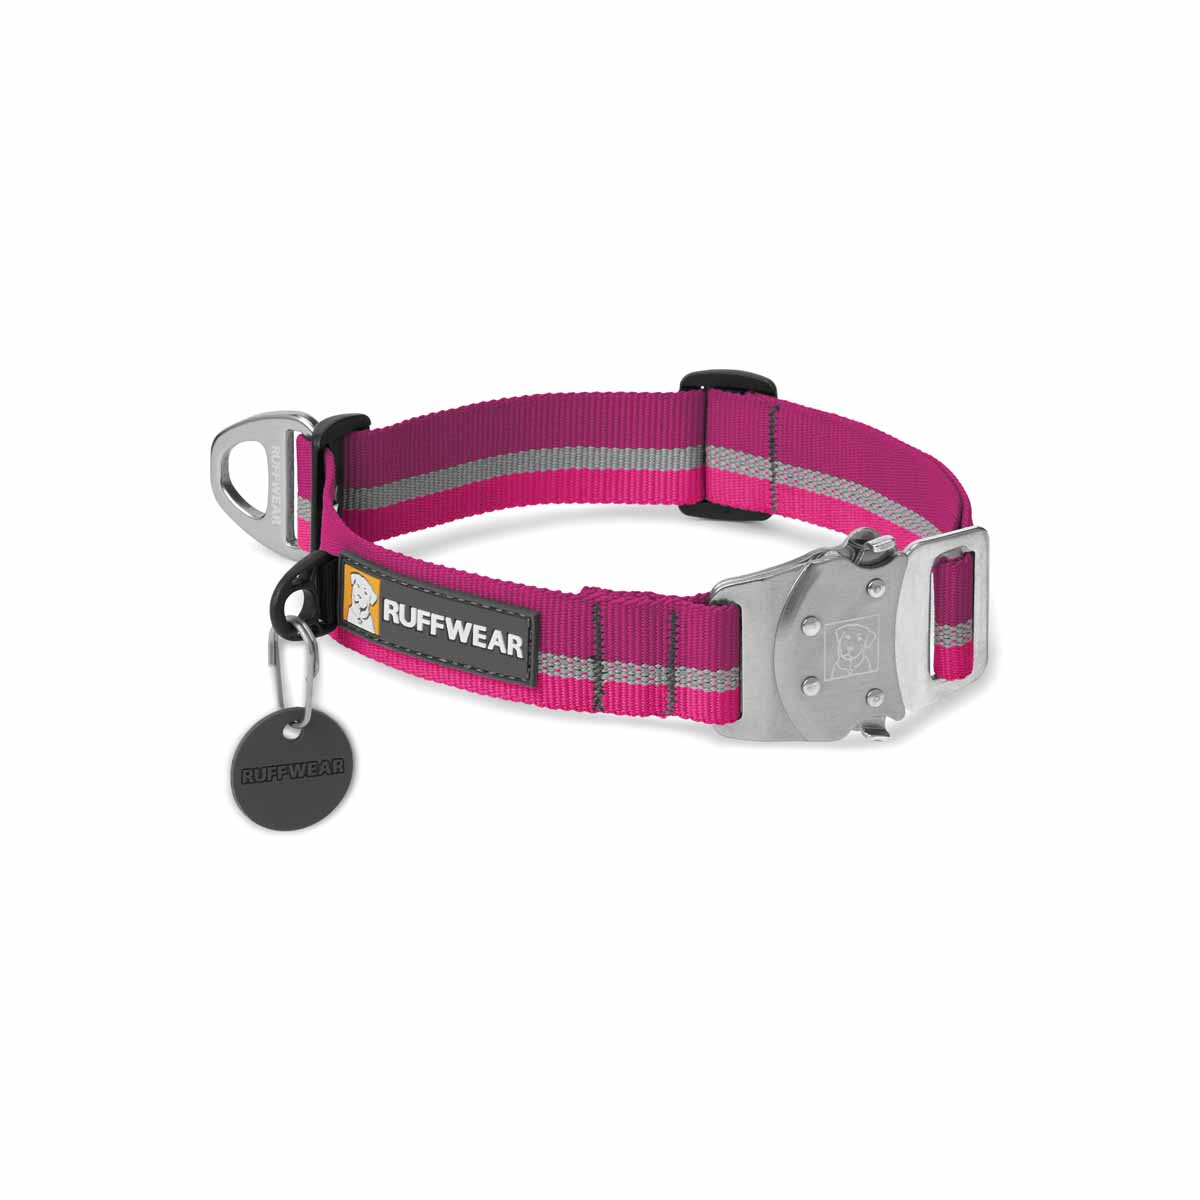 Top Rope Dog Collar by RuffWear - Purple Dusk